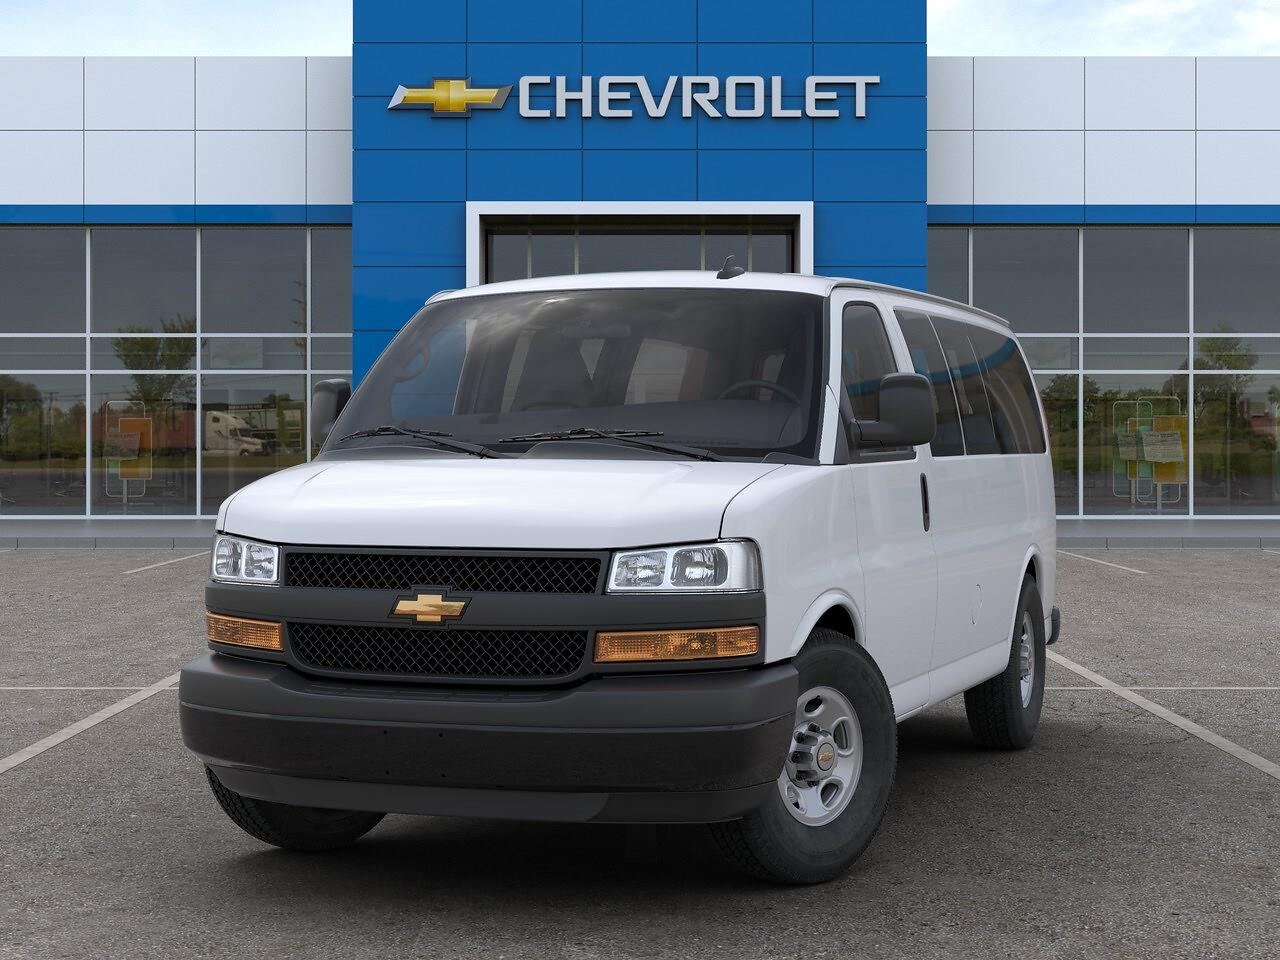 2020 Chevrolet Express 2500 4x2, Passenger Wagon #FC20359 - photo 1